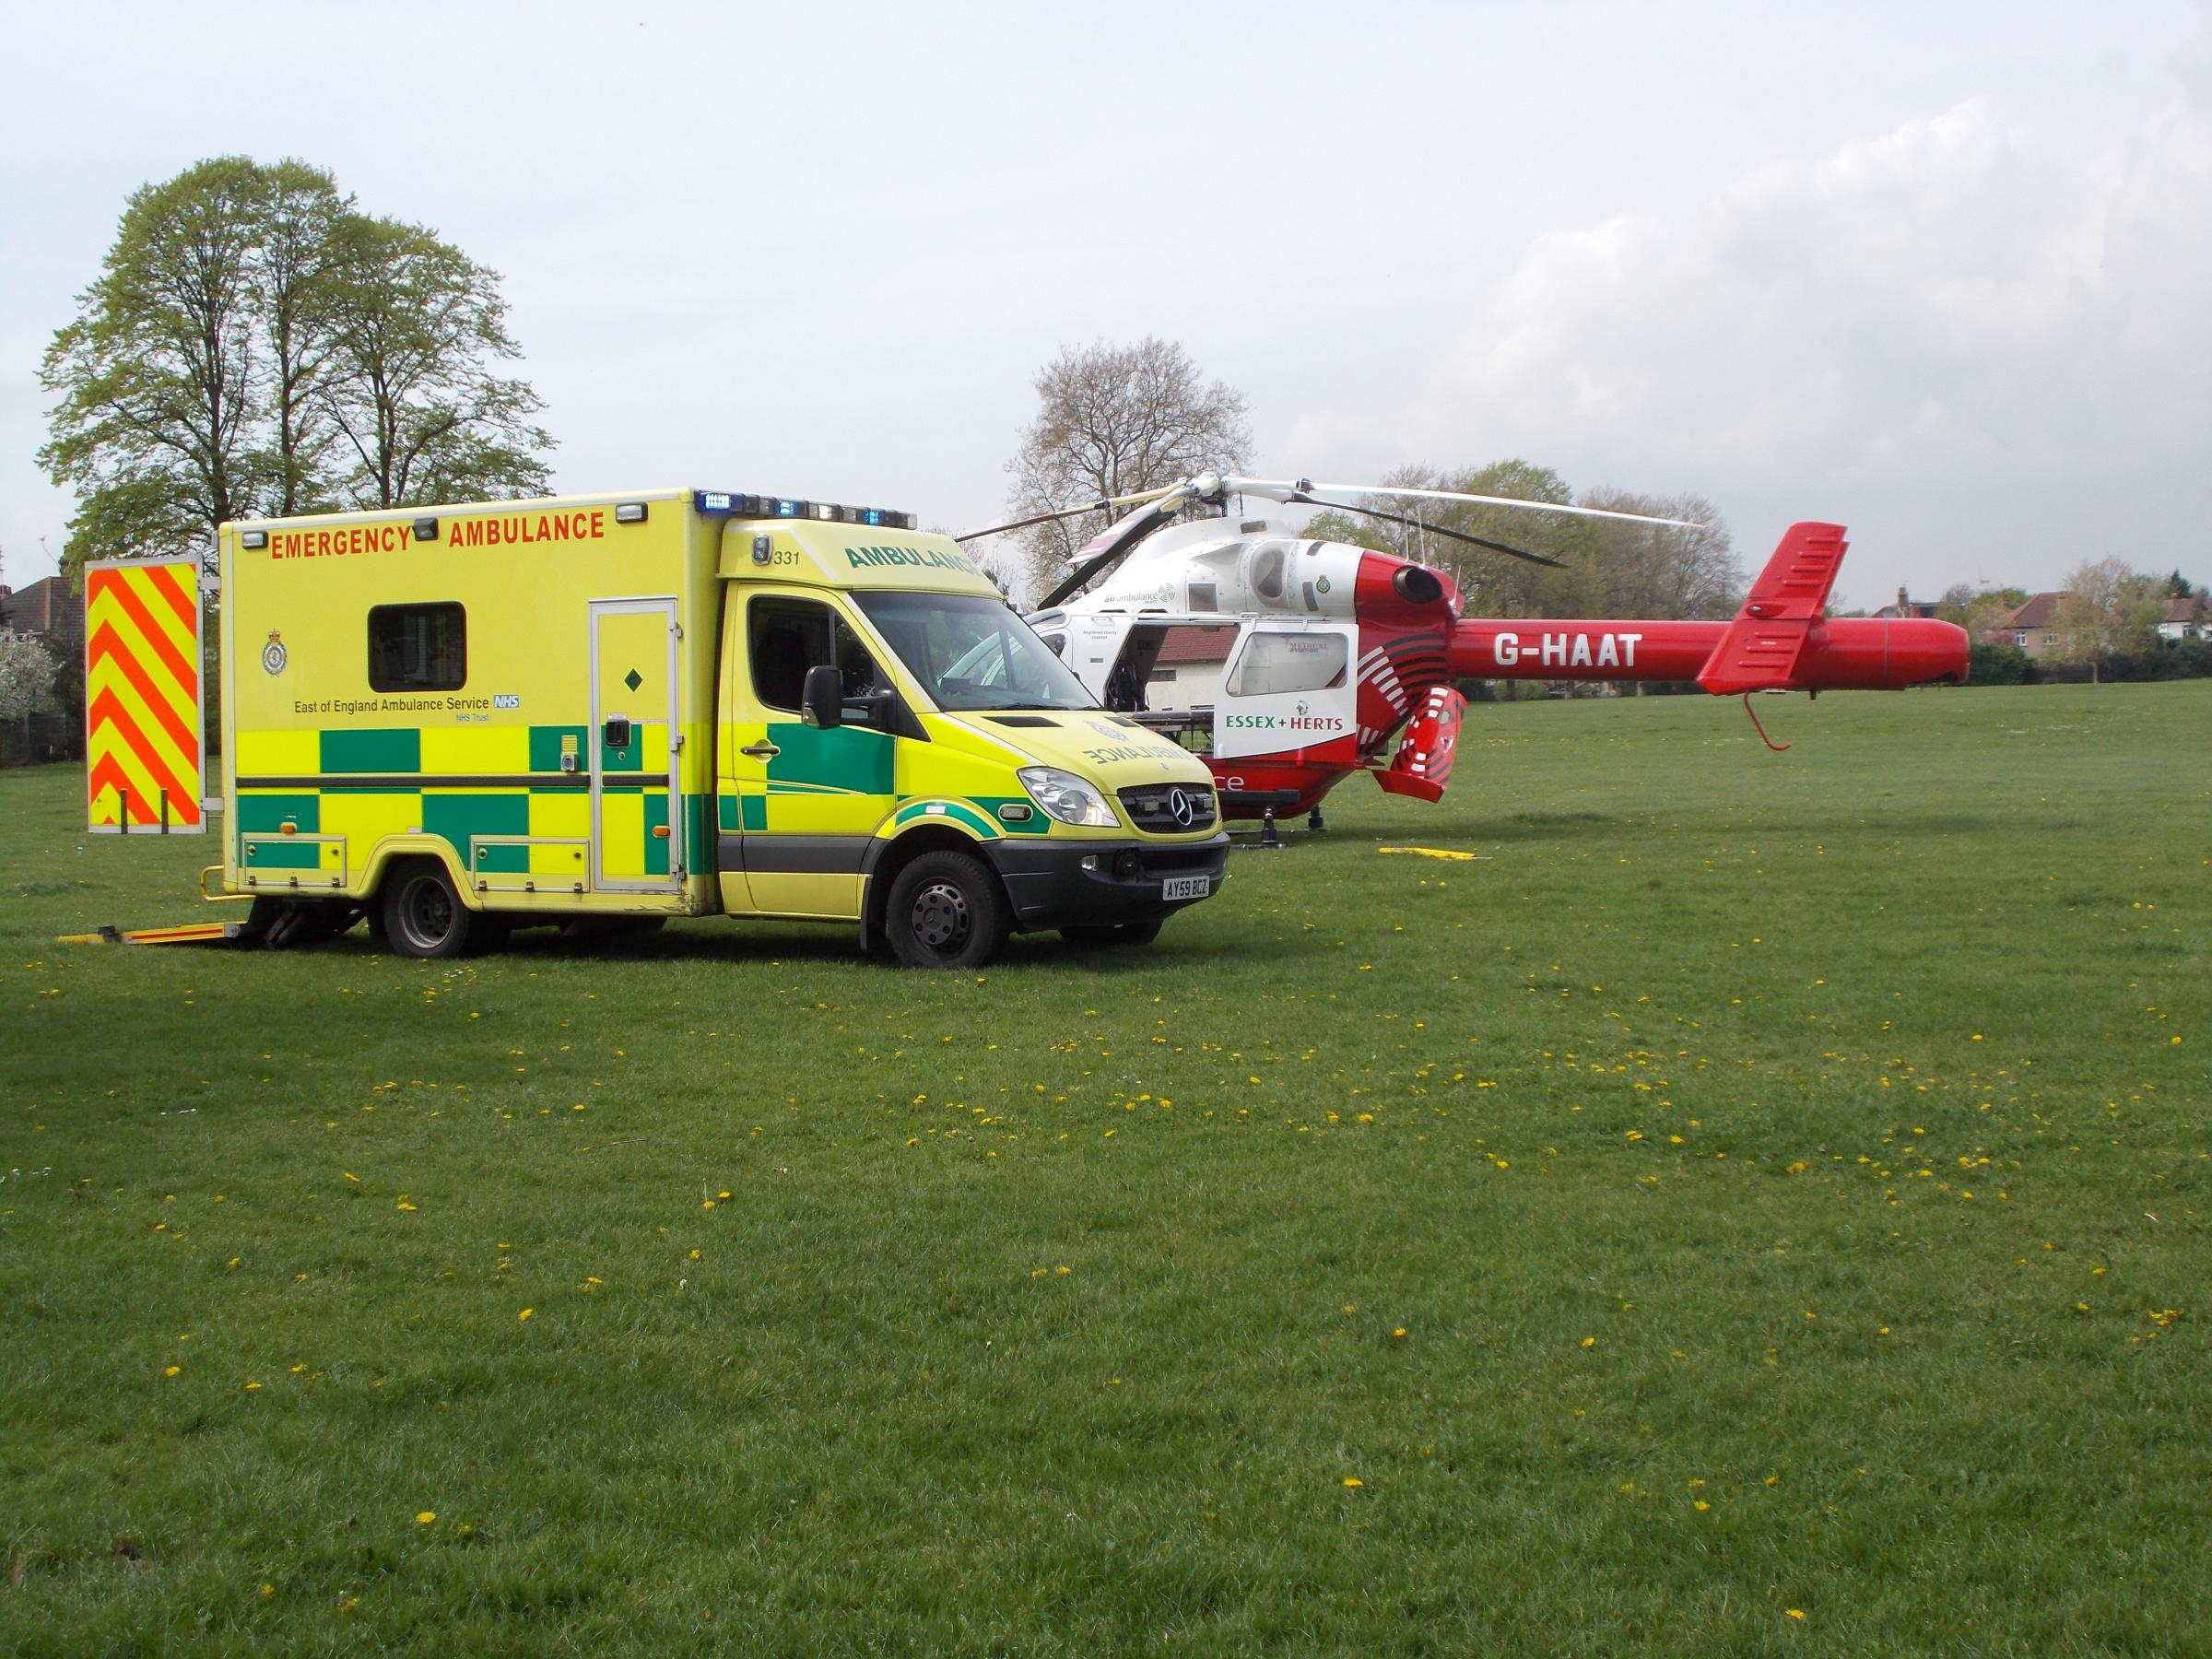 The man was loaded onto the air ambulance in Victory Park